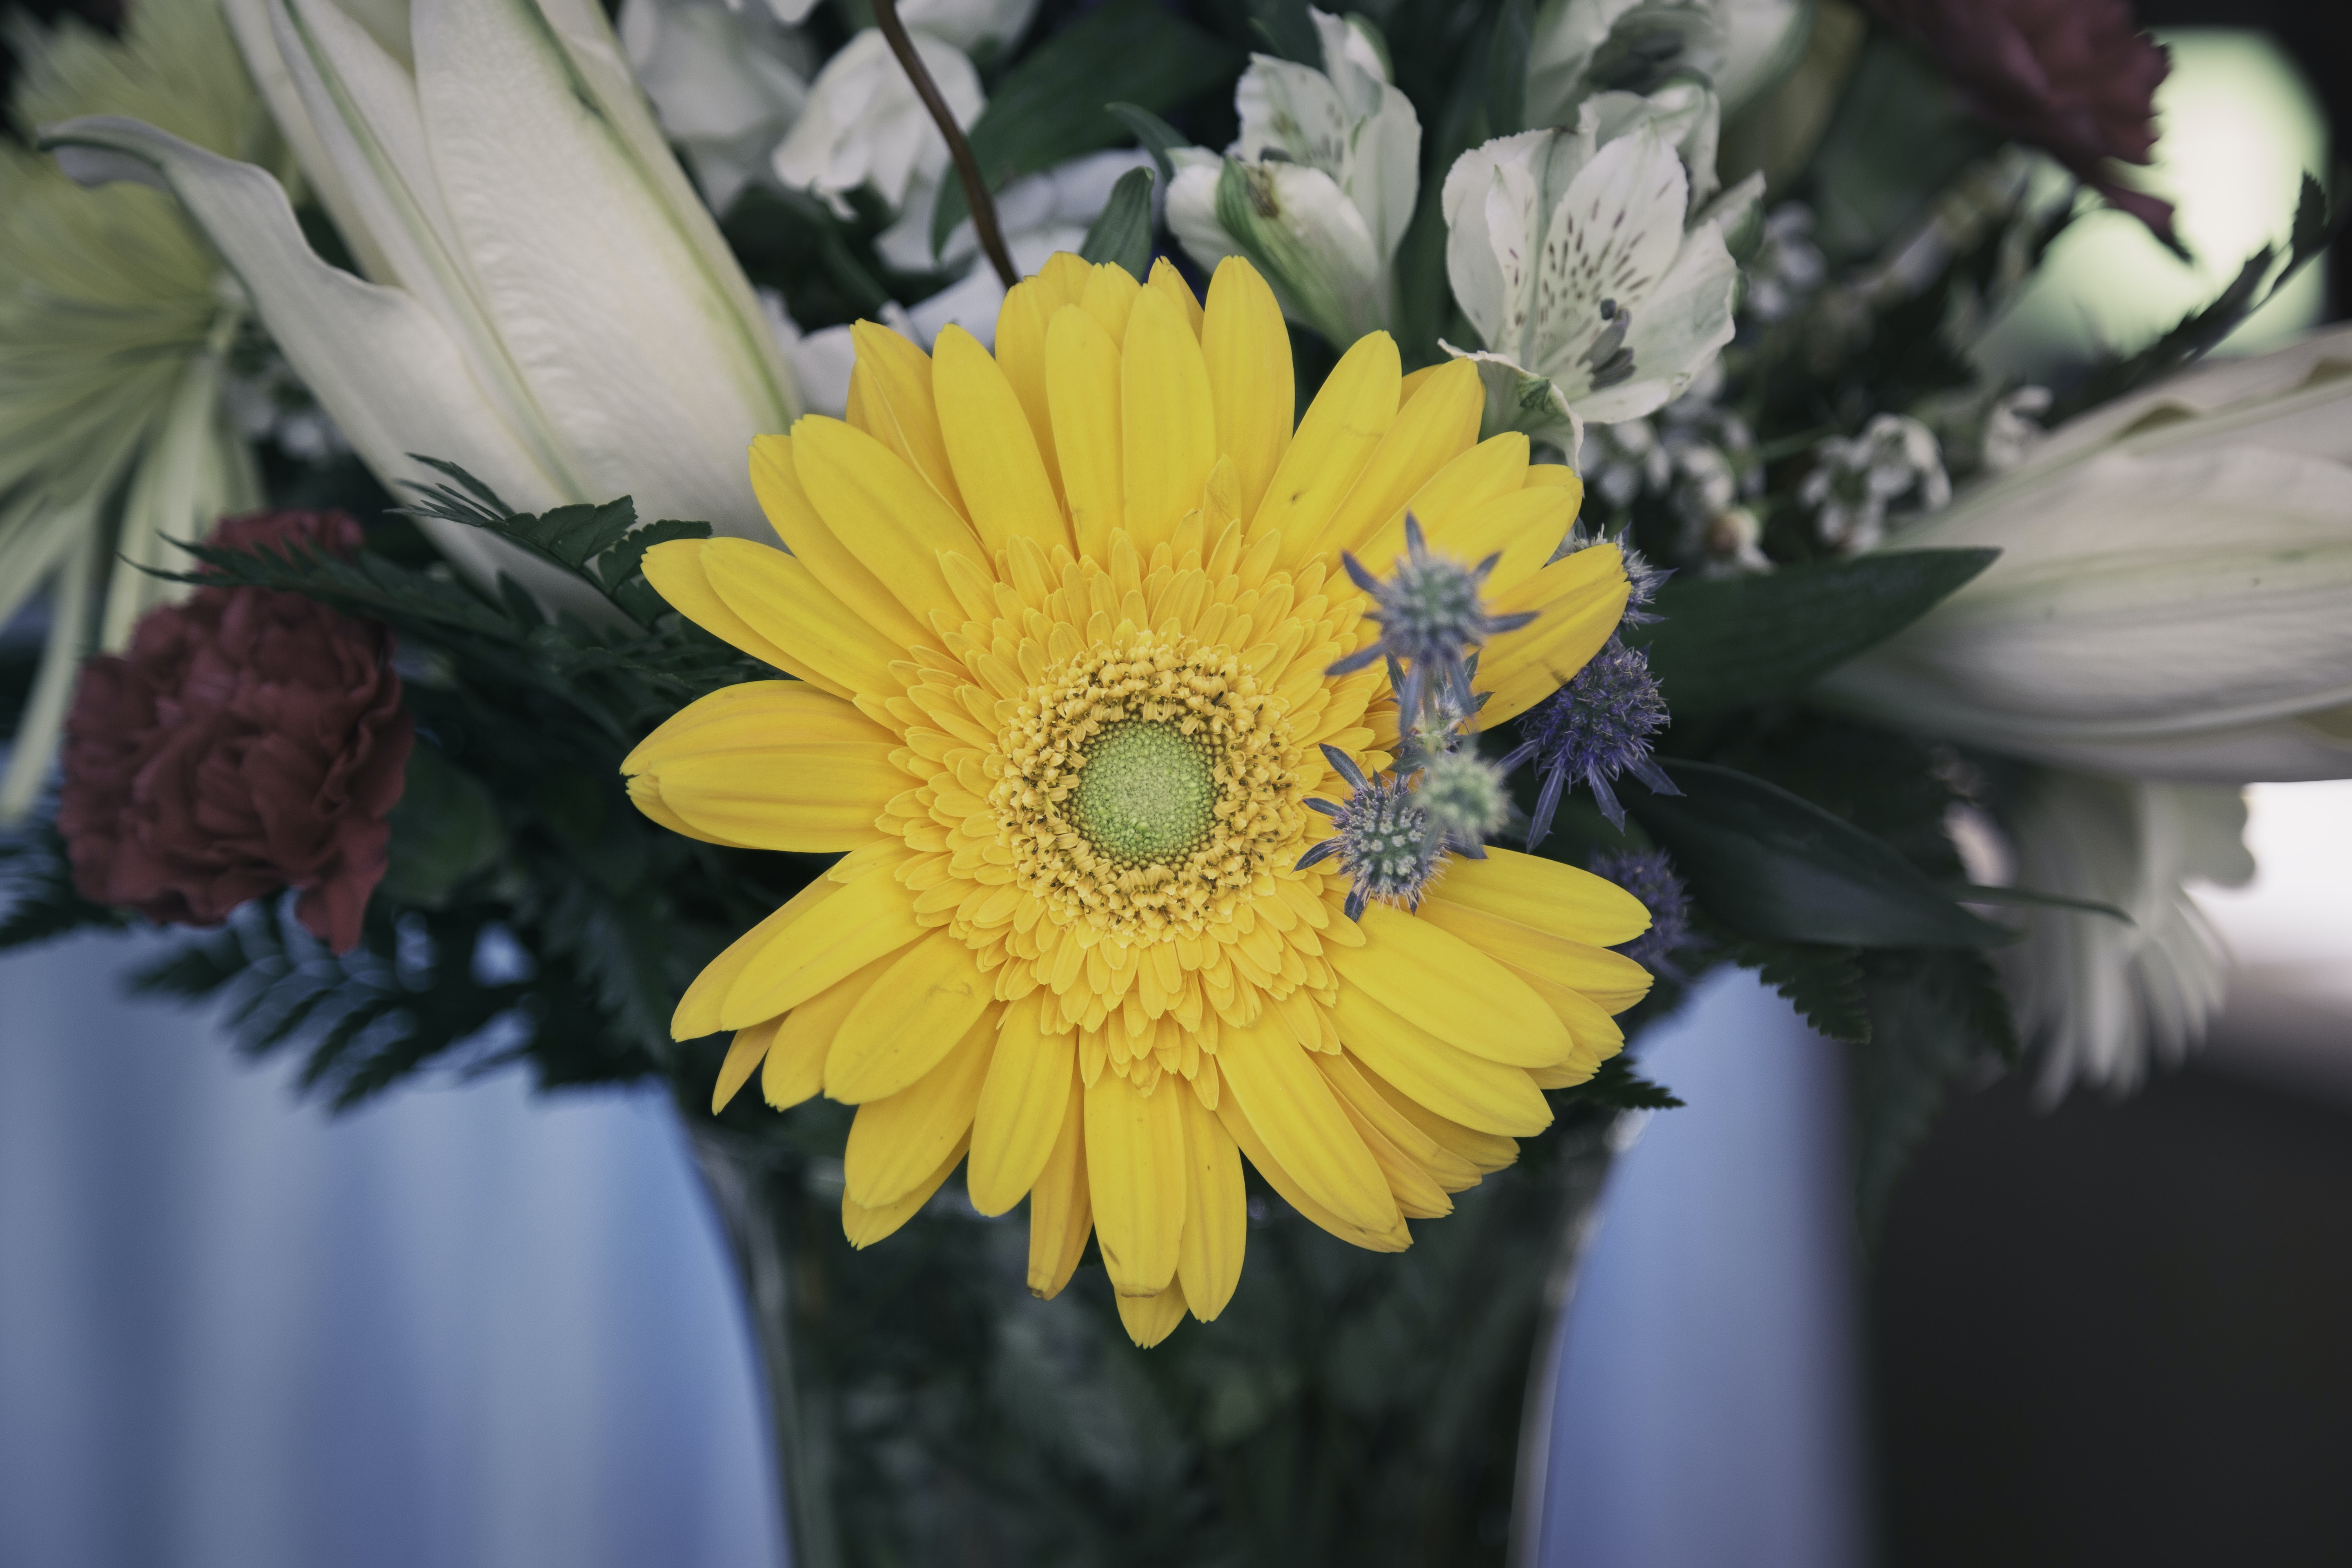 yellow clustered flower in vase